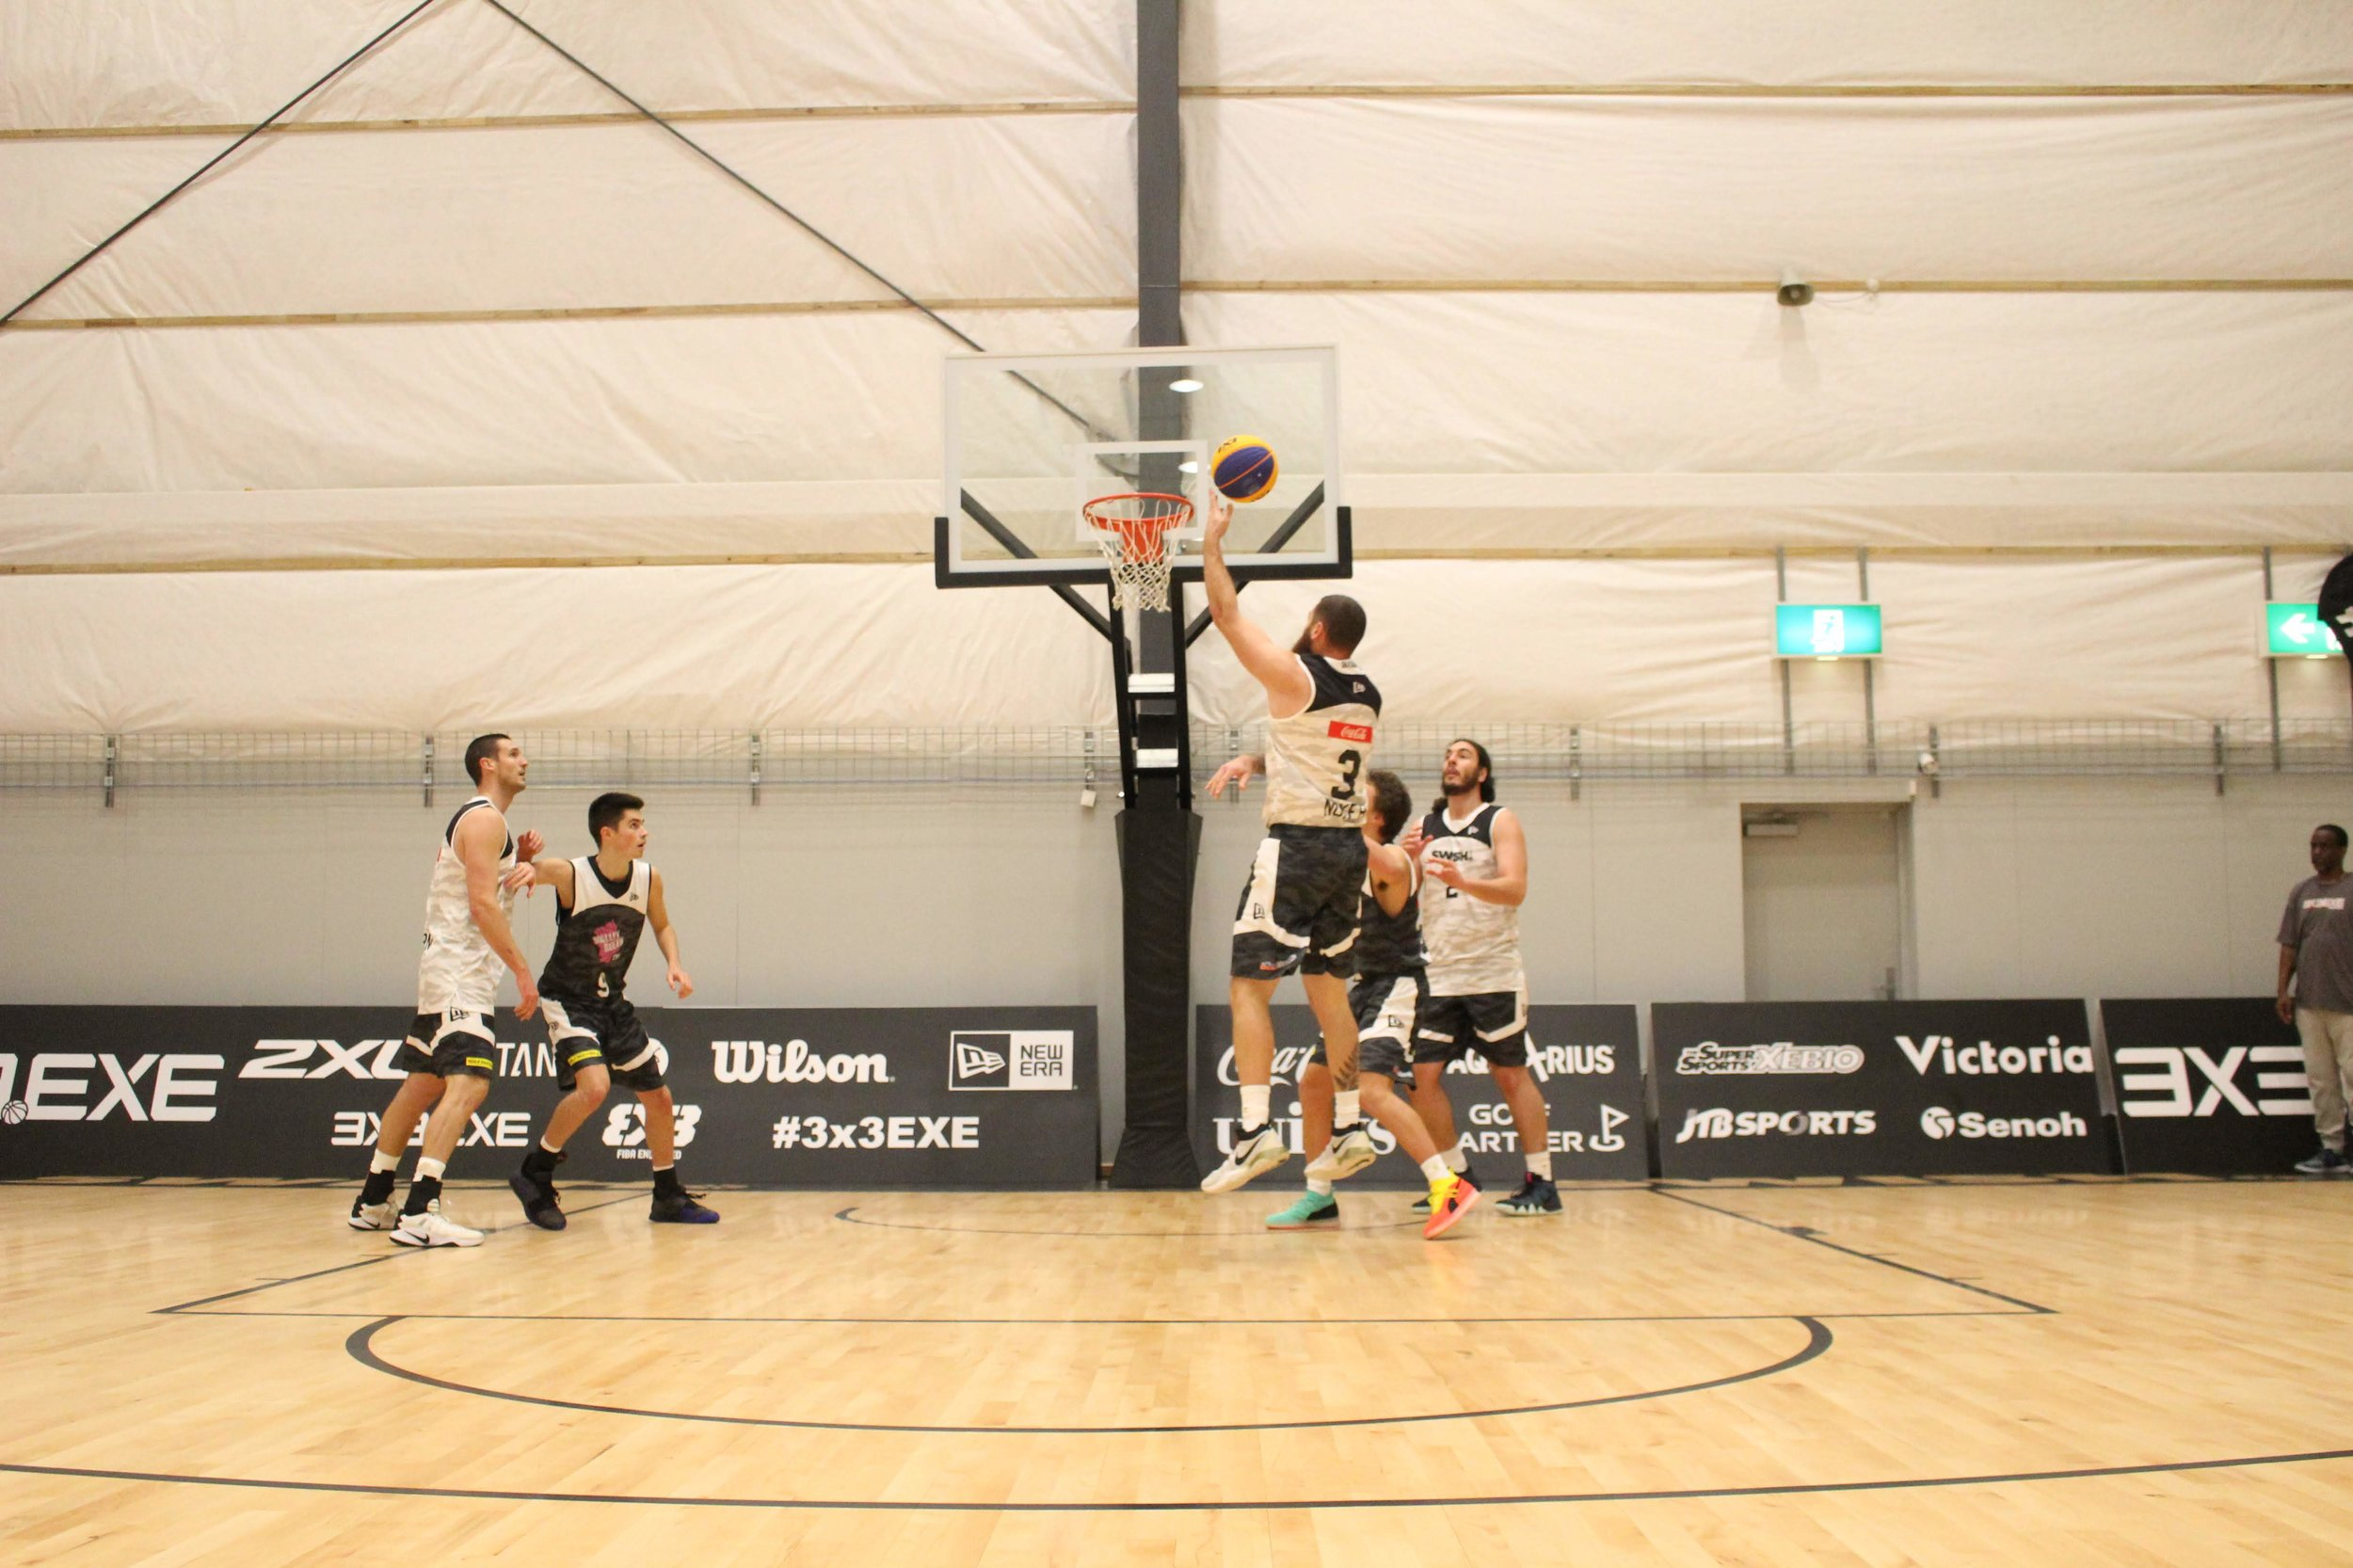 3x3 Leagues - More touches. more shots. more fun! leagues for SCHOOL years 7-8, 9-10, 11-13, Open men, open women. starting 29th july.